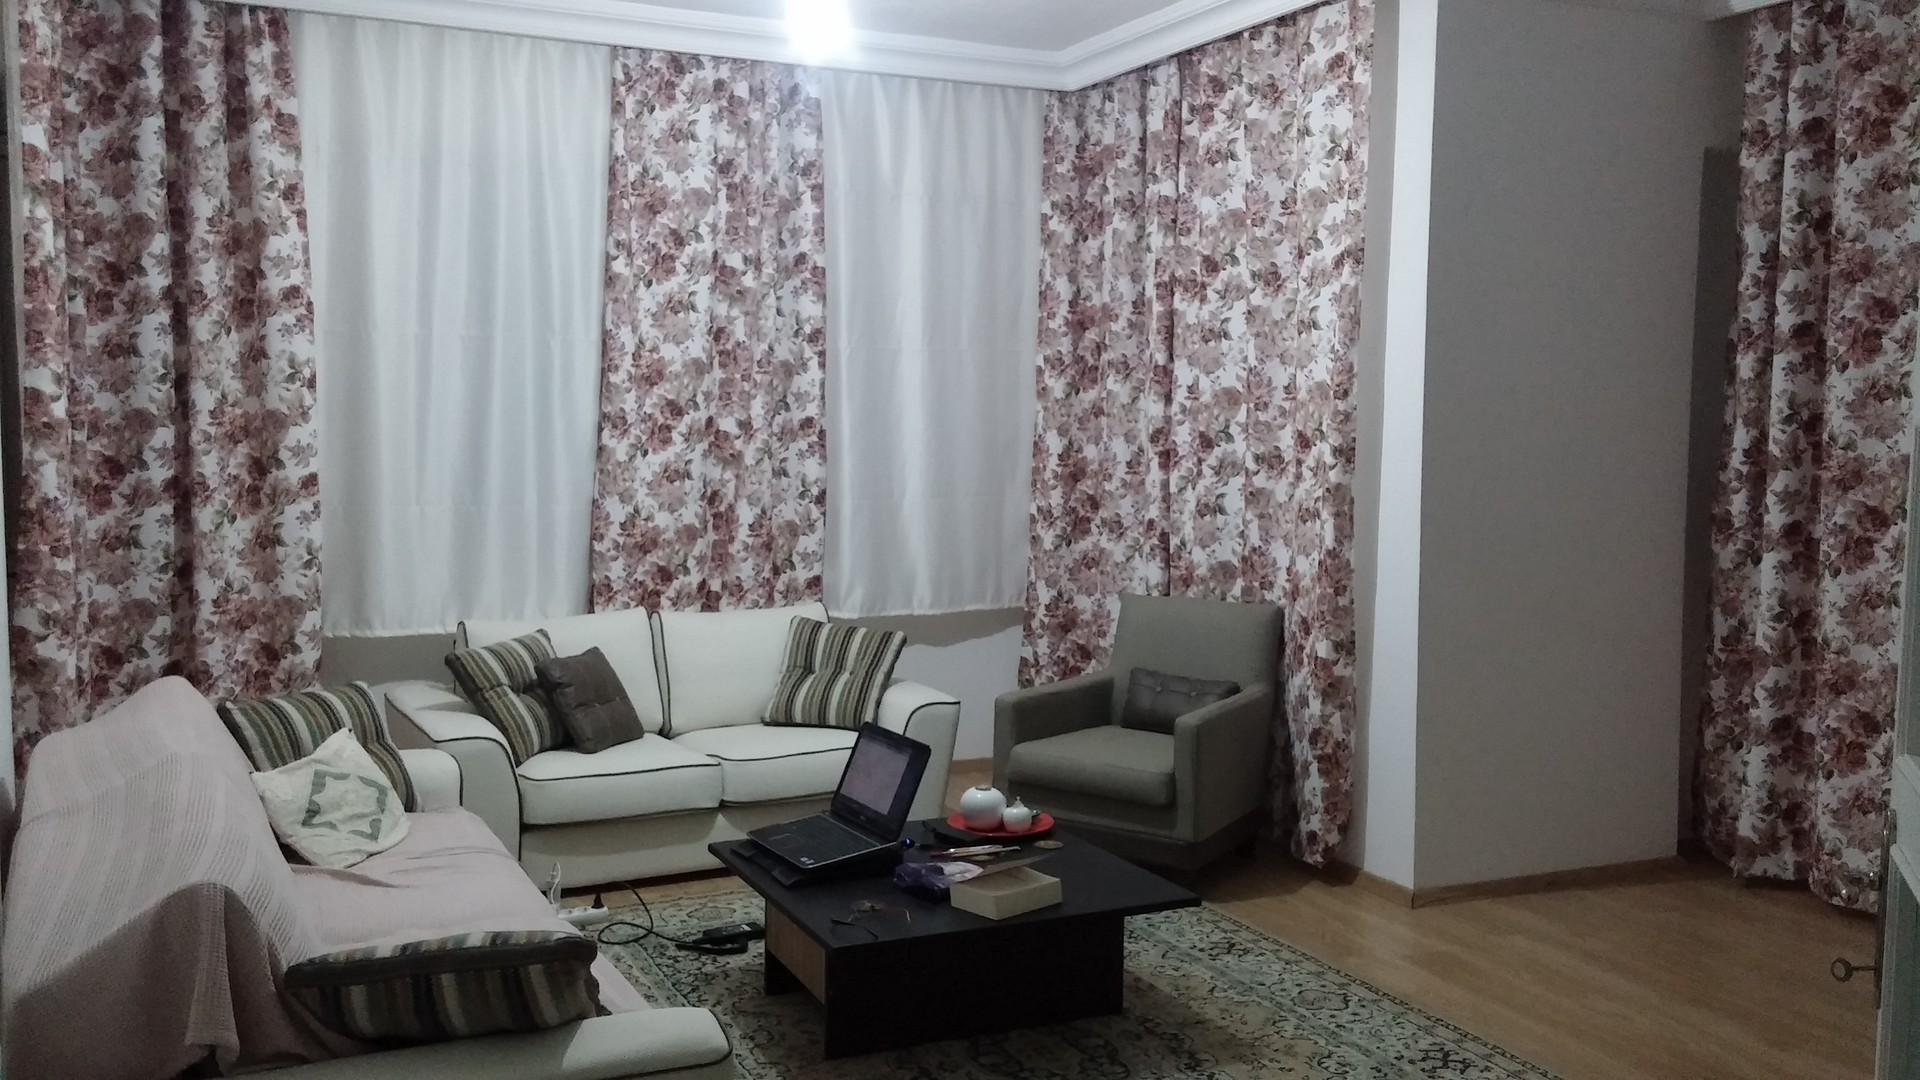 a-room-rent-close-uni-4feac22f7740e47f13888144e2b84fb6